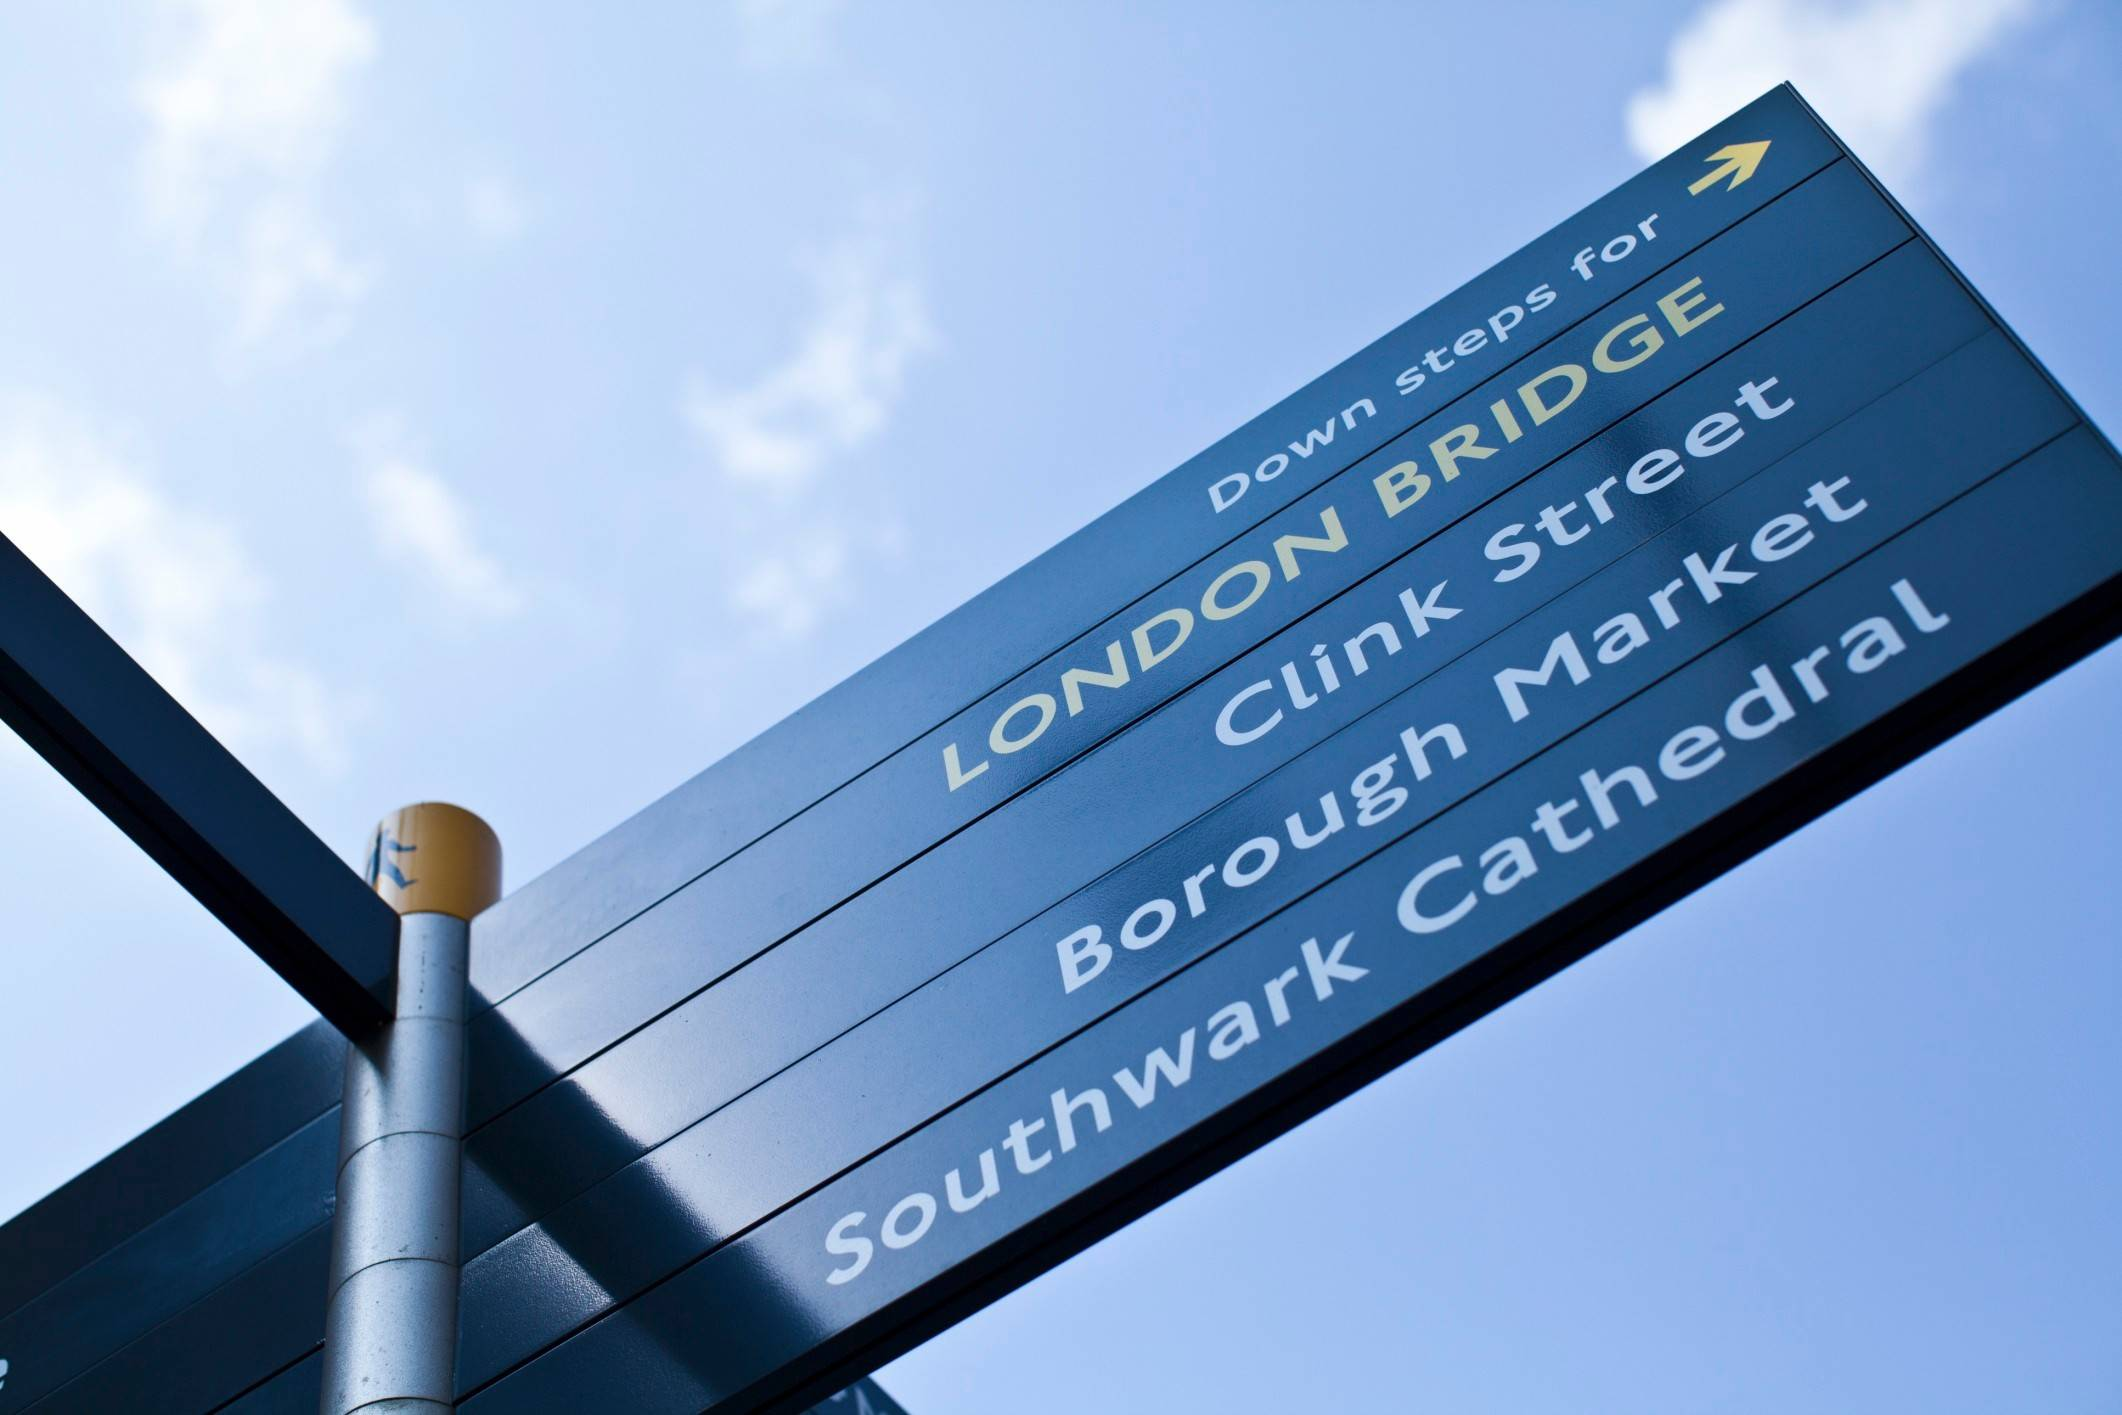 A street sign in London shows the way to Borough Market and London Bridge among other destinations.